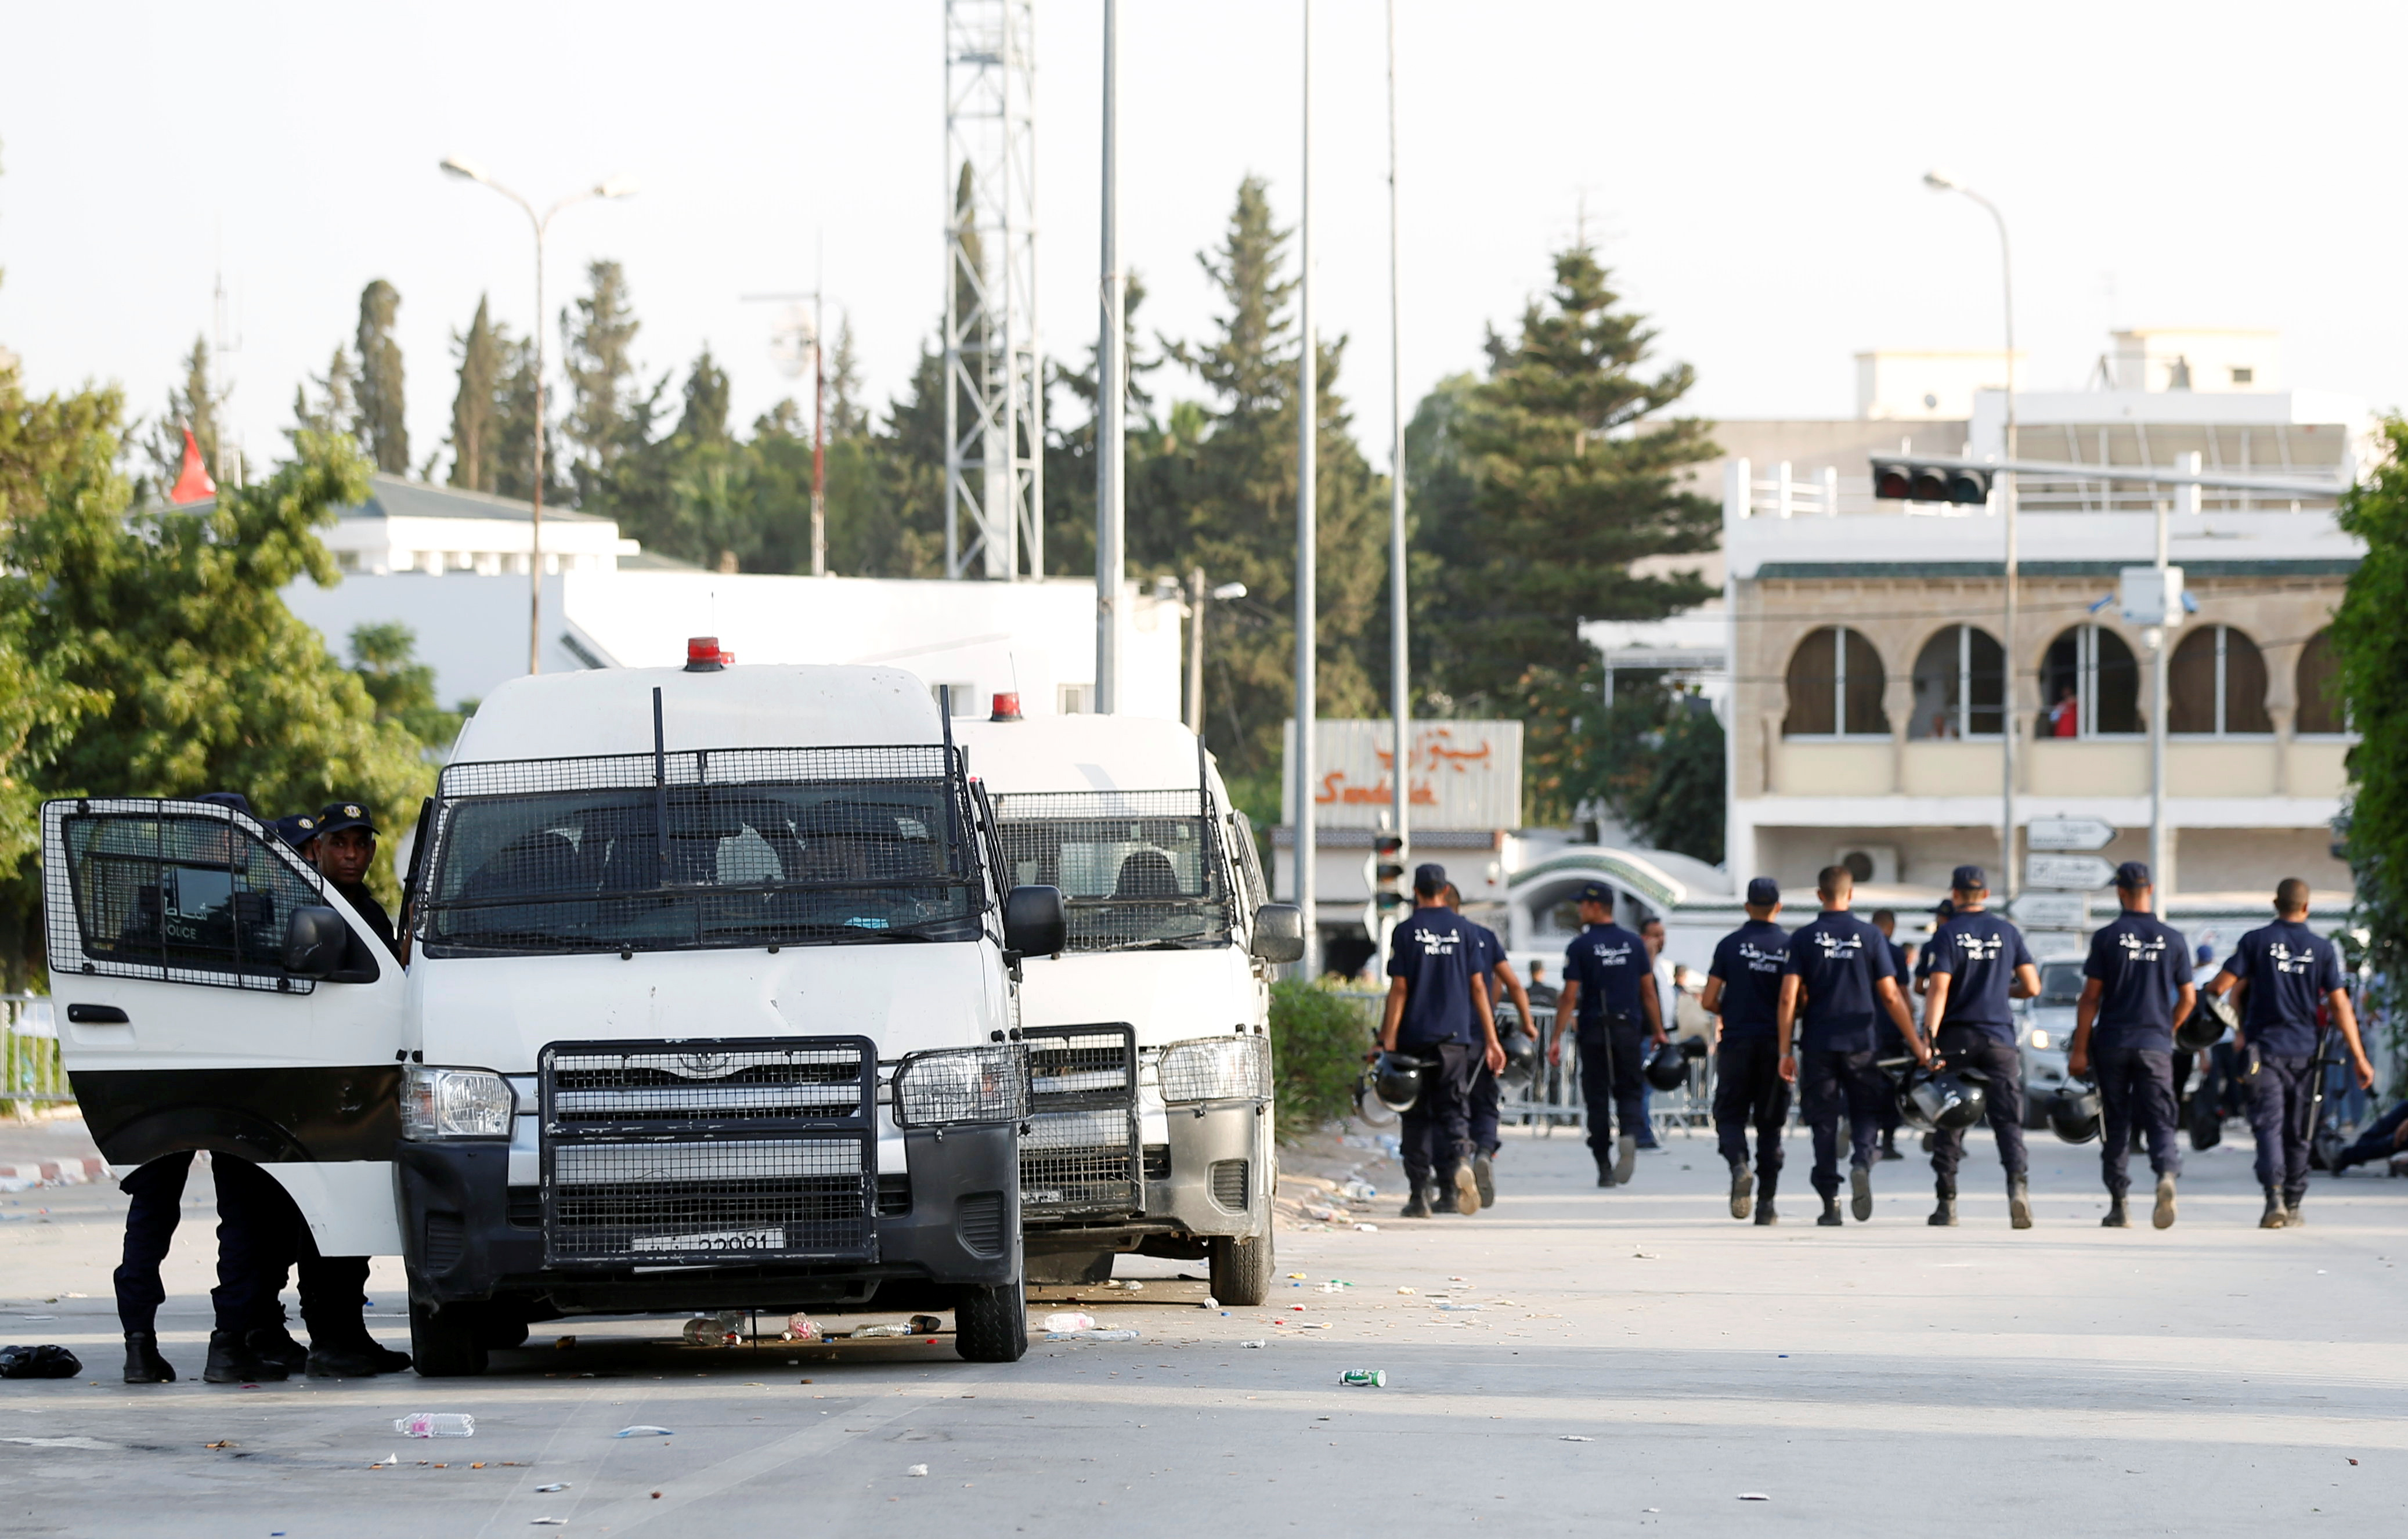 Police officers walk near the parliament building in Tunis, Tunisia  July 26, 2021. REUTERS/Zoubeir Souissi